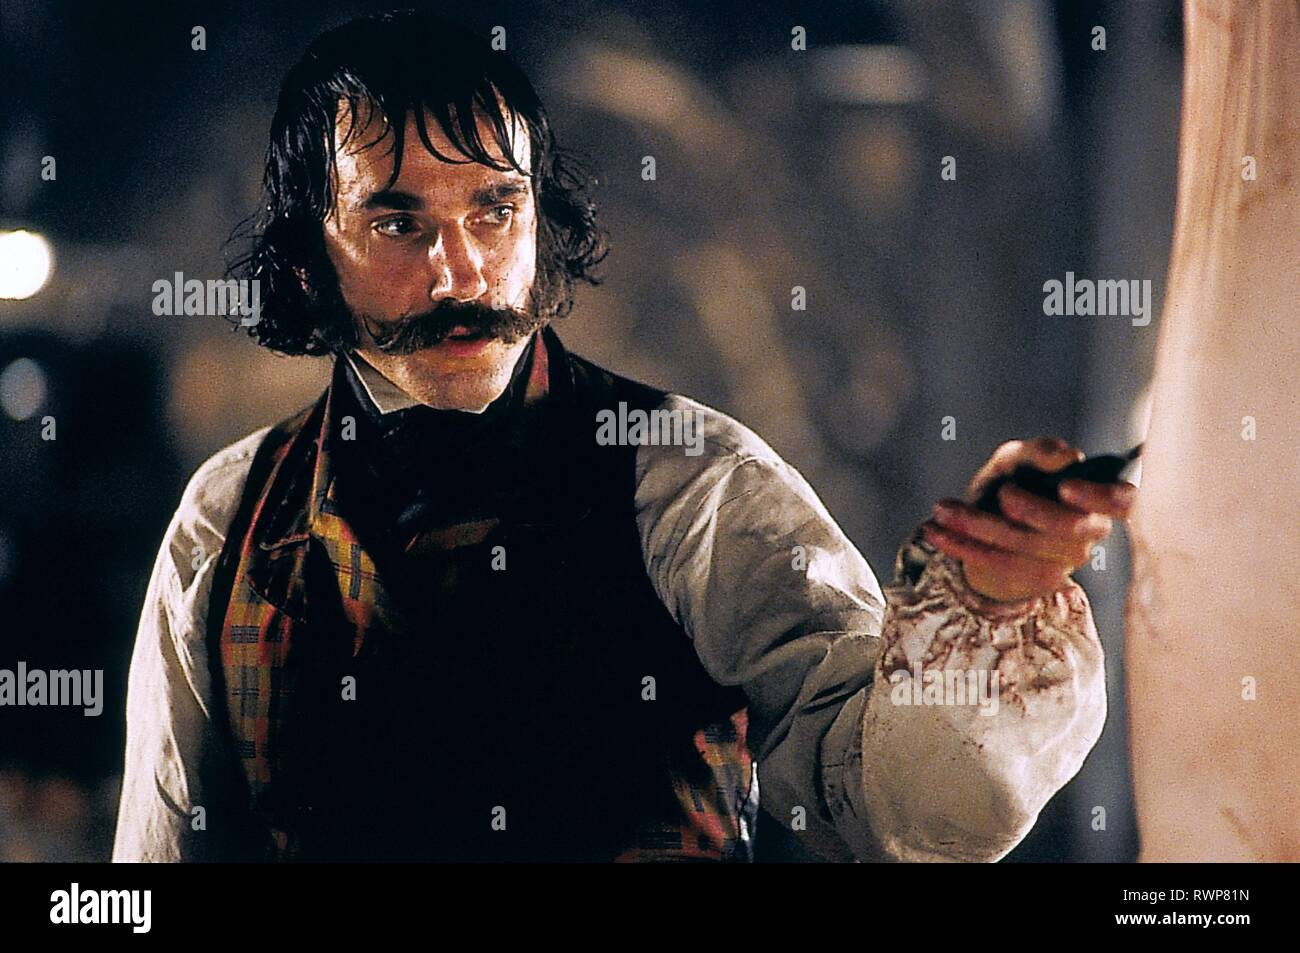 DANIEL DAY-LEWIS, GANGS OF NEW YORK, 2002 - Stock Image